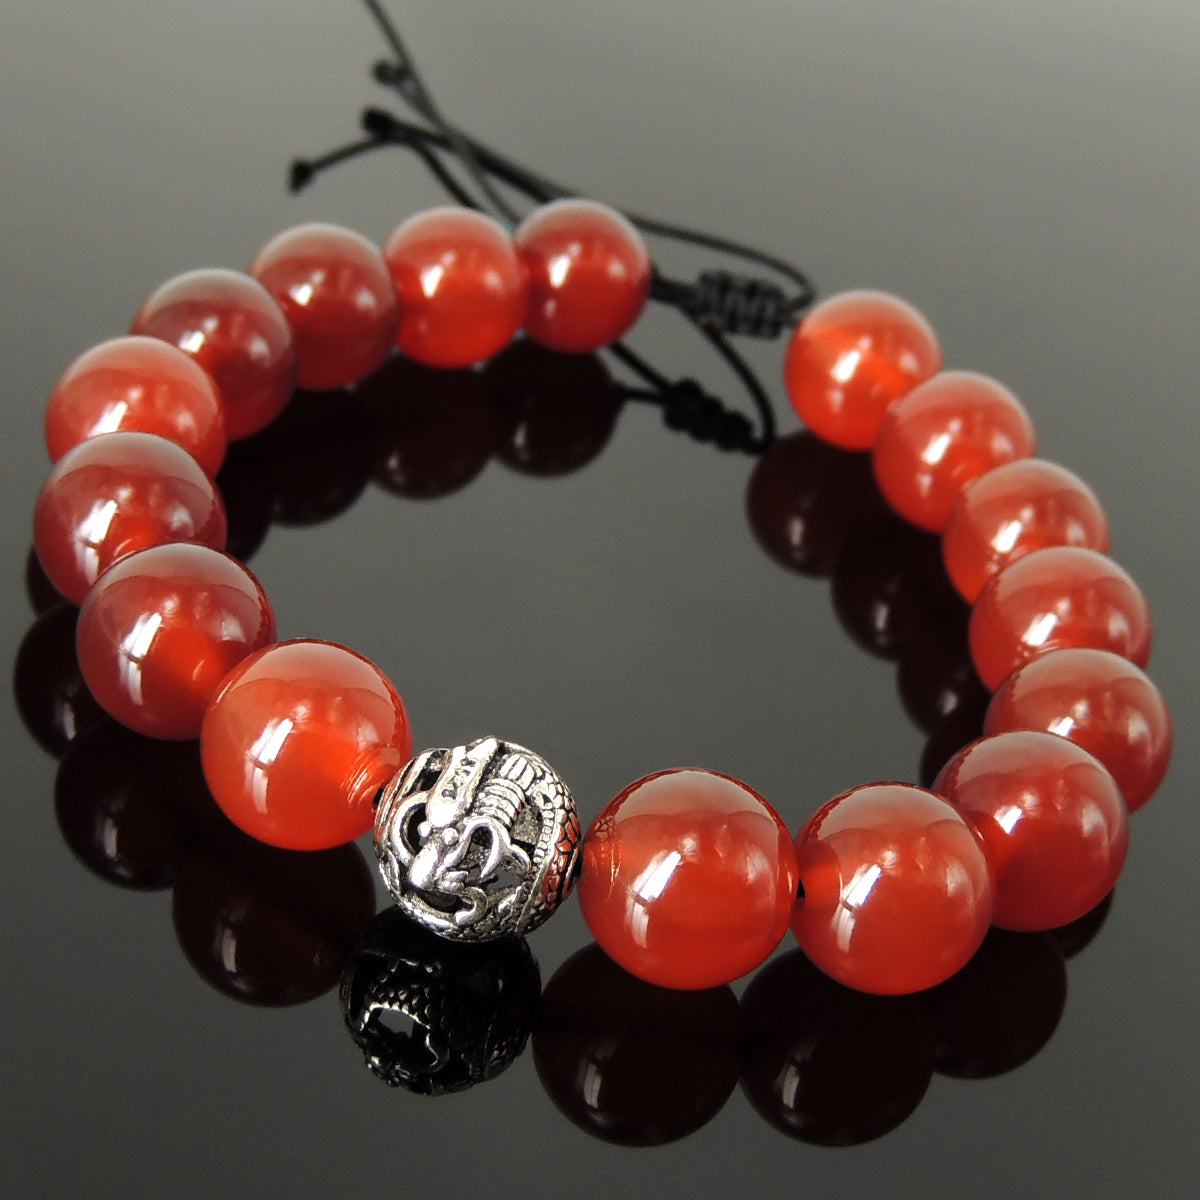 Handmade Asian Dragon Braided Bracelet - Men & Women Harmony Protection with Red Agate 12mm Gemstones, Adjustable Drawstring, S925 Sterling Silver Bead